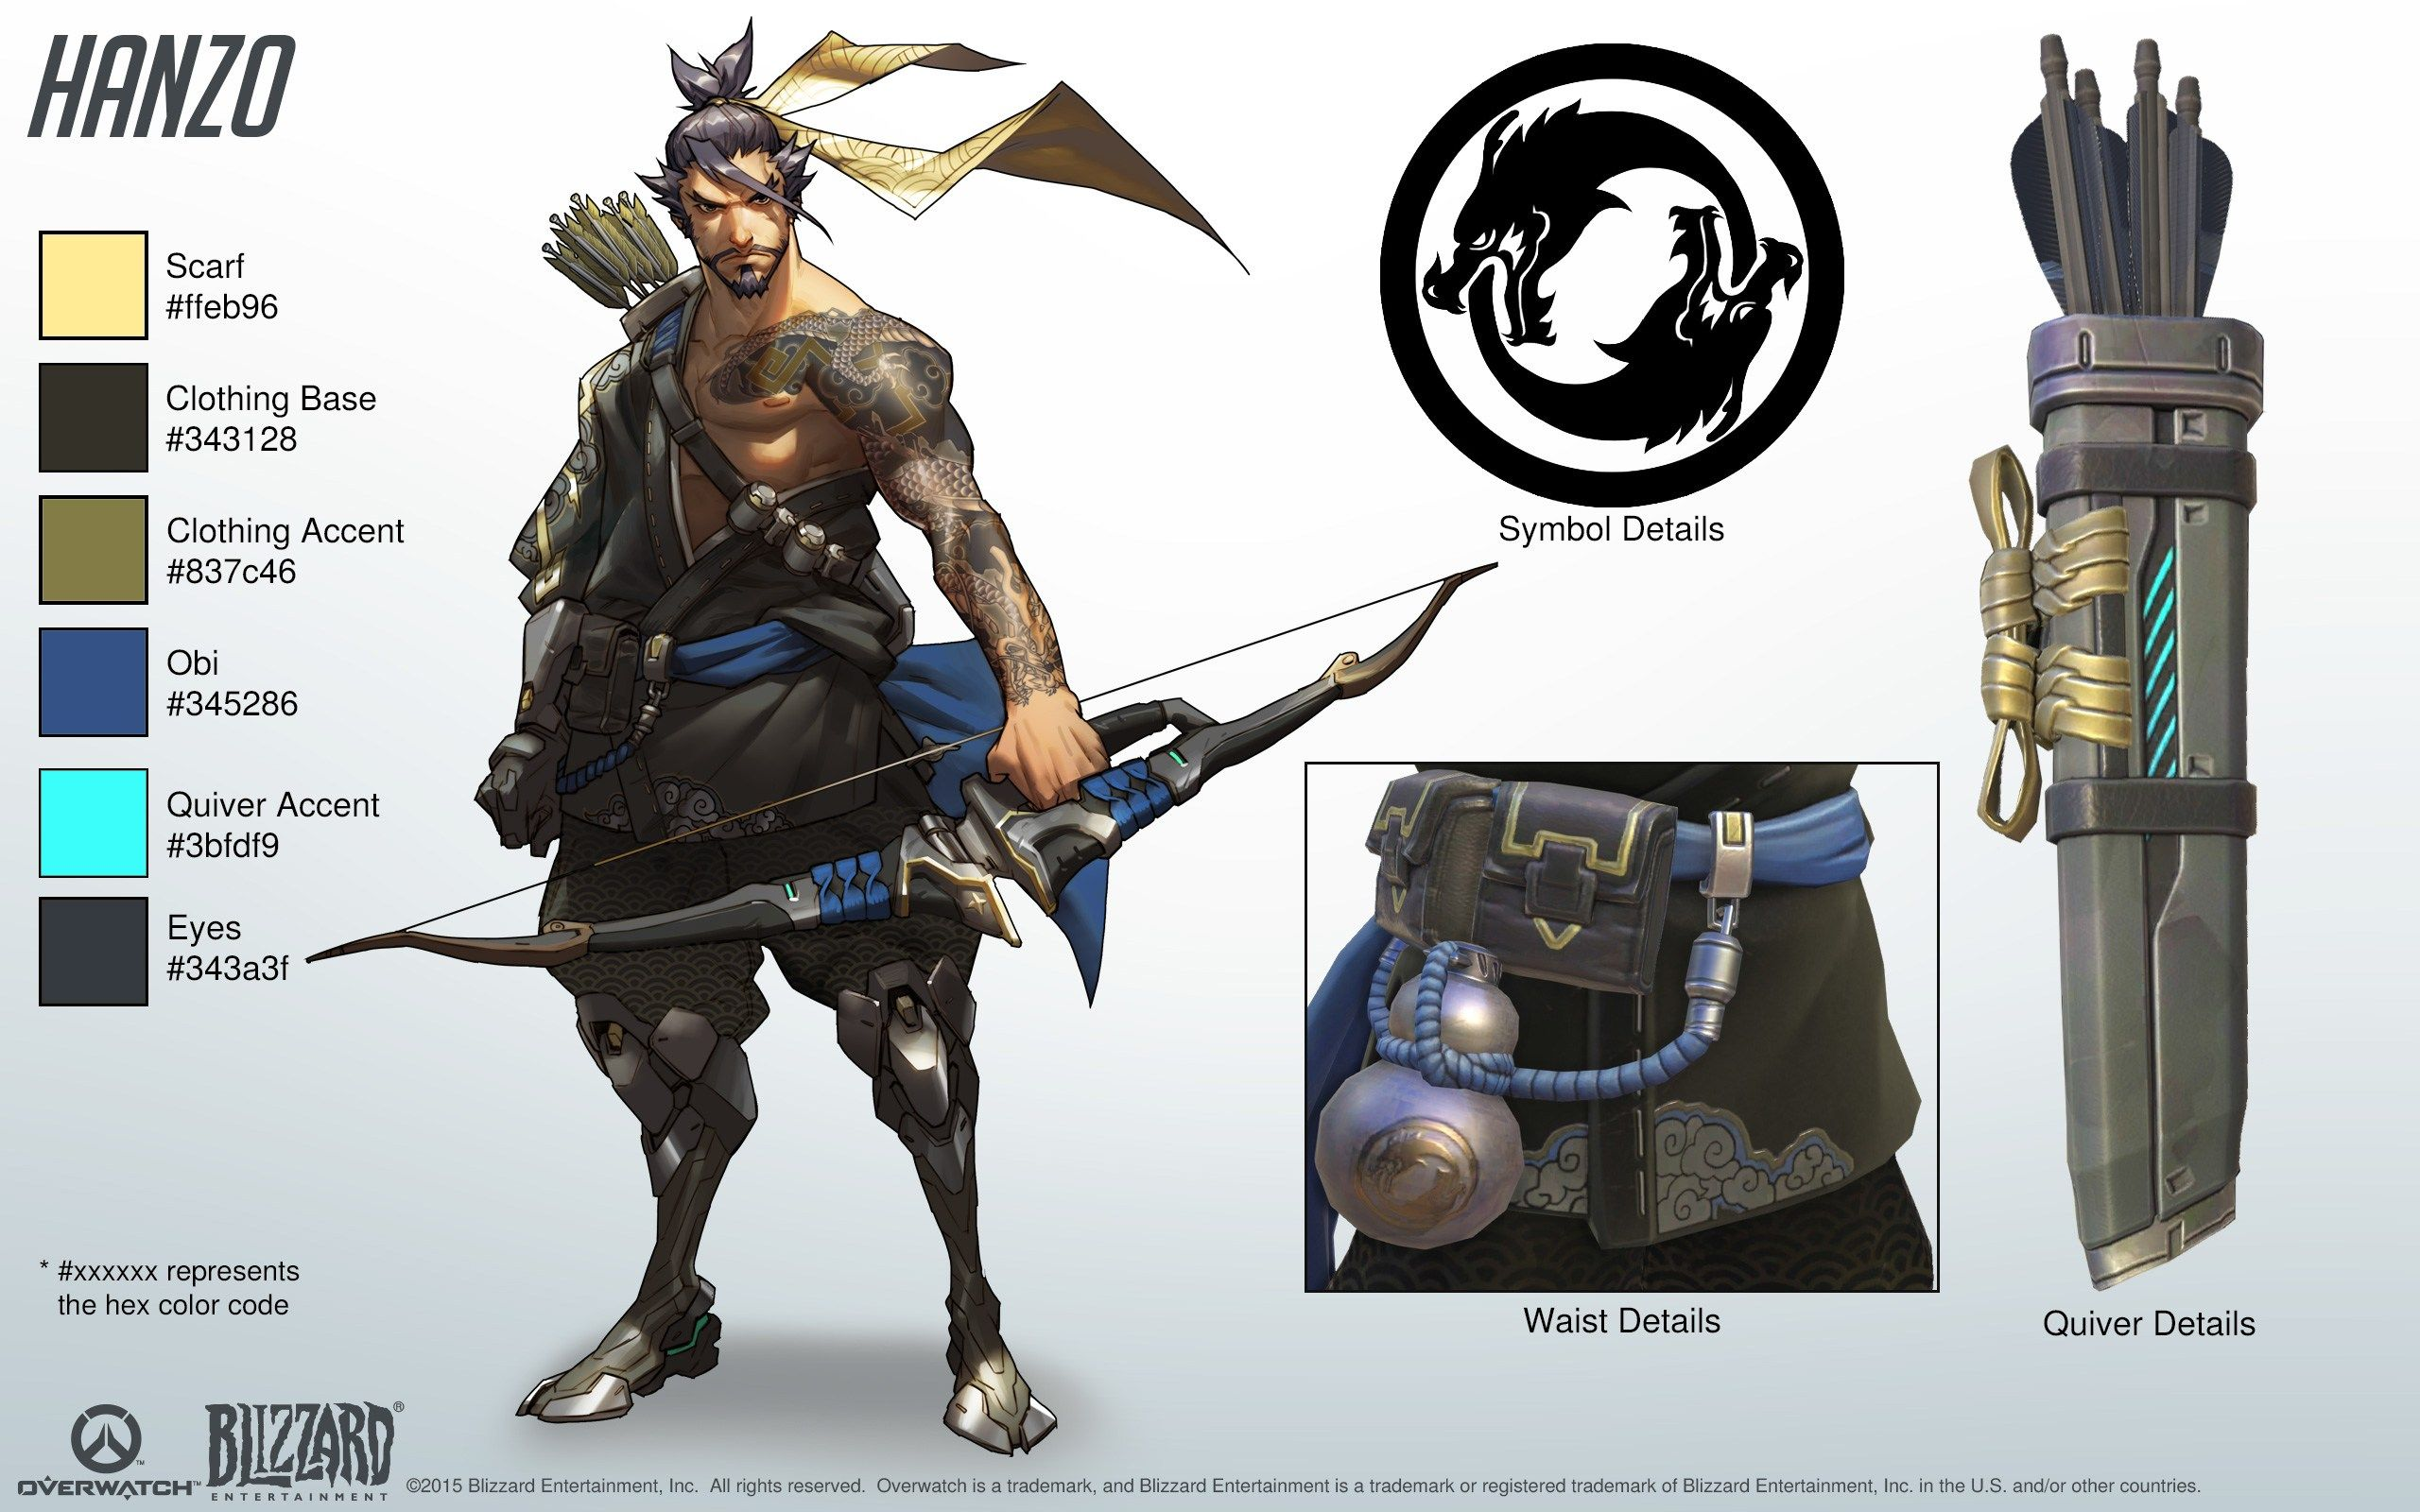 Overwatch Character Design Concept Art : Hanzo overwatch sheet character pinterest